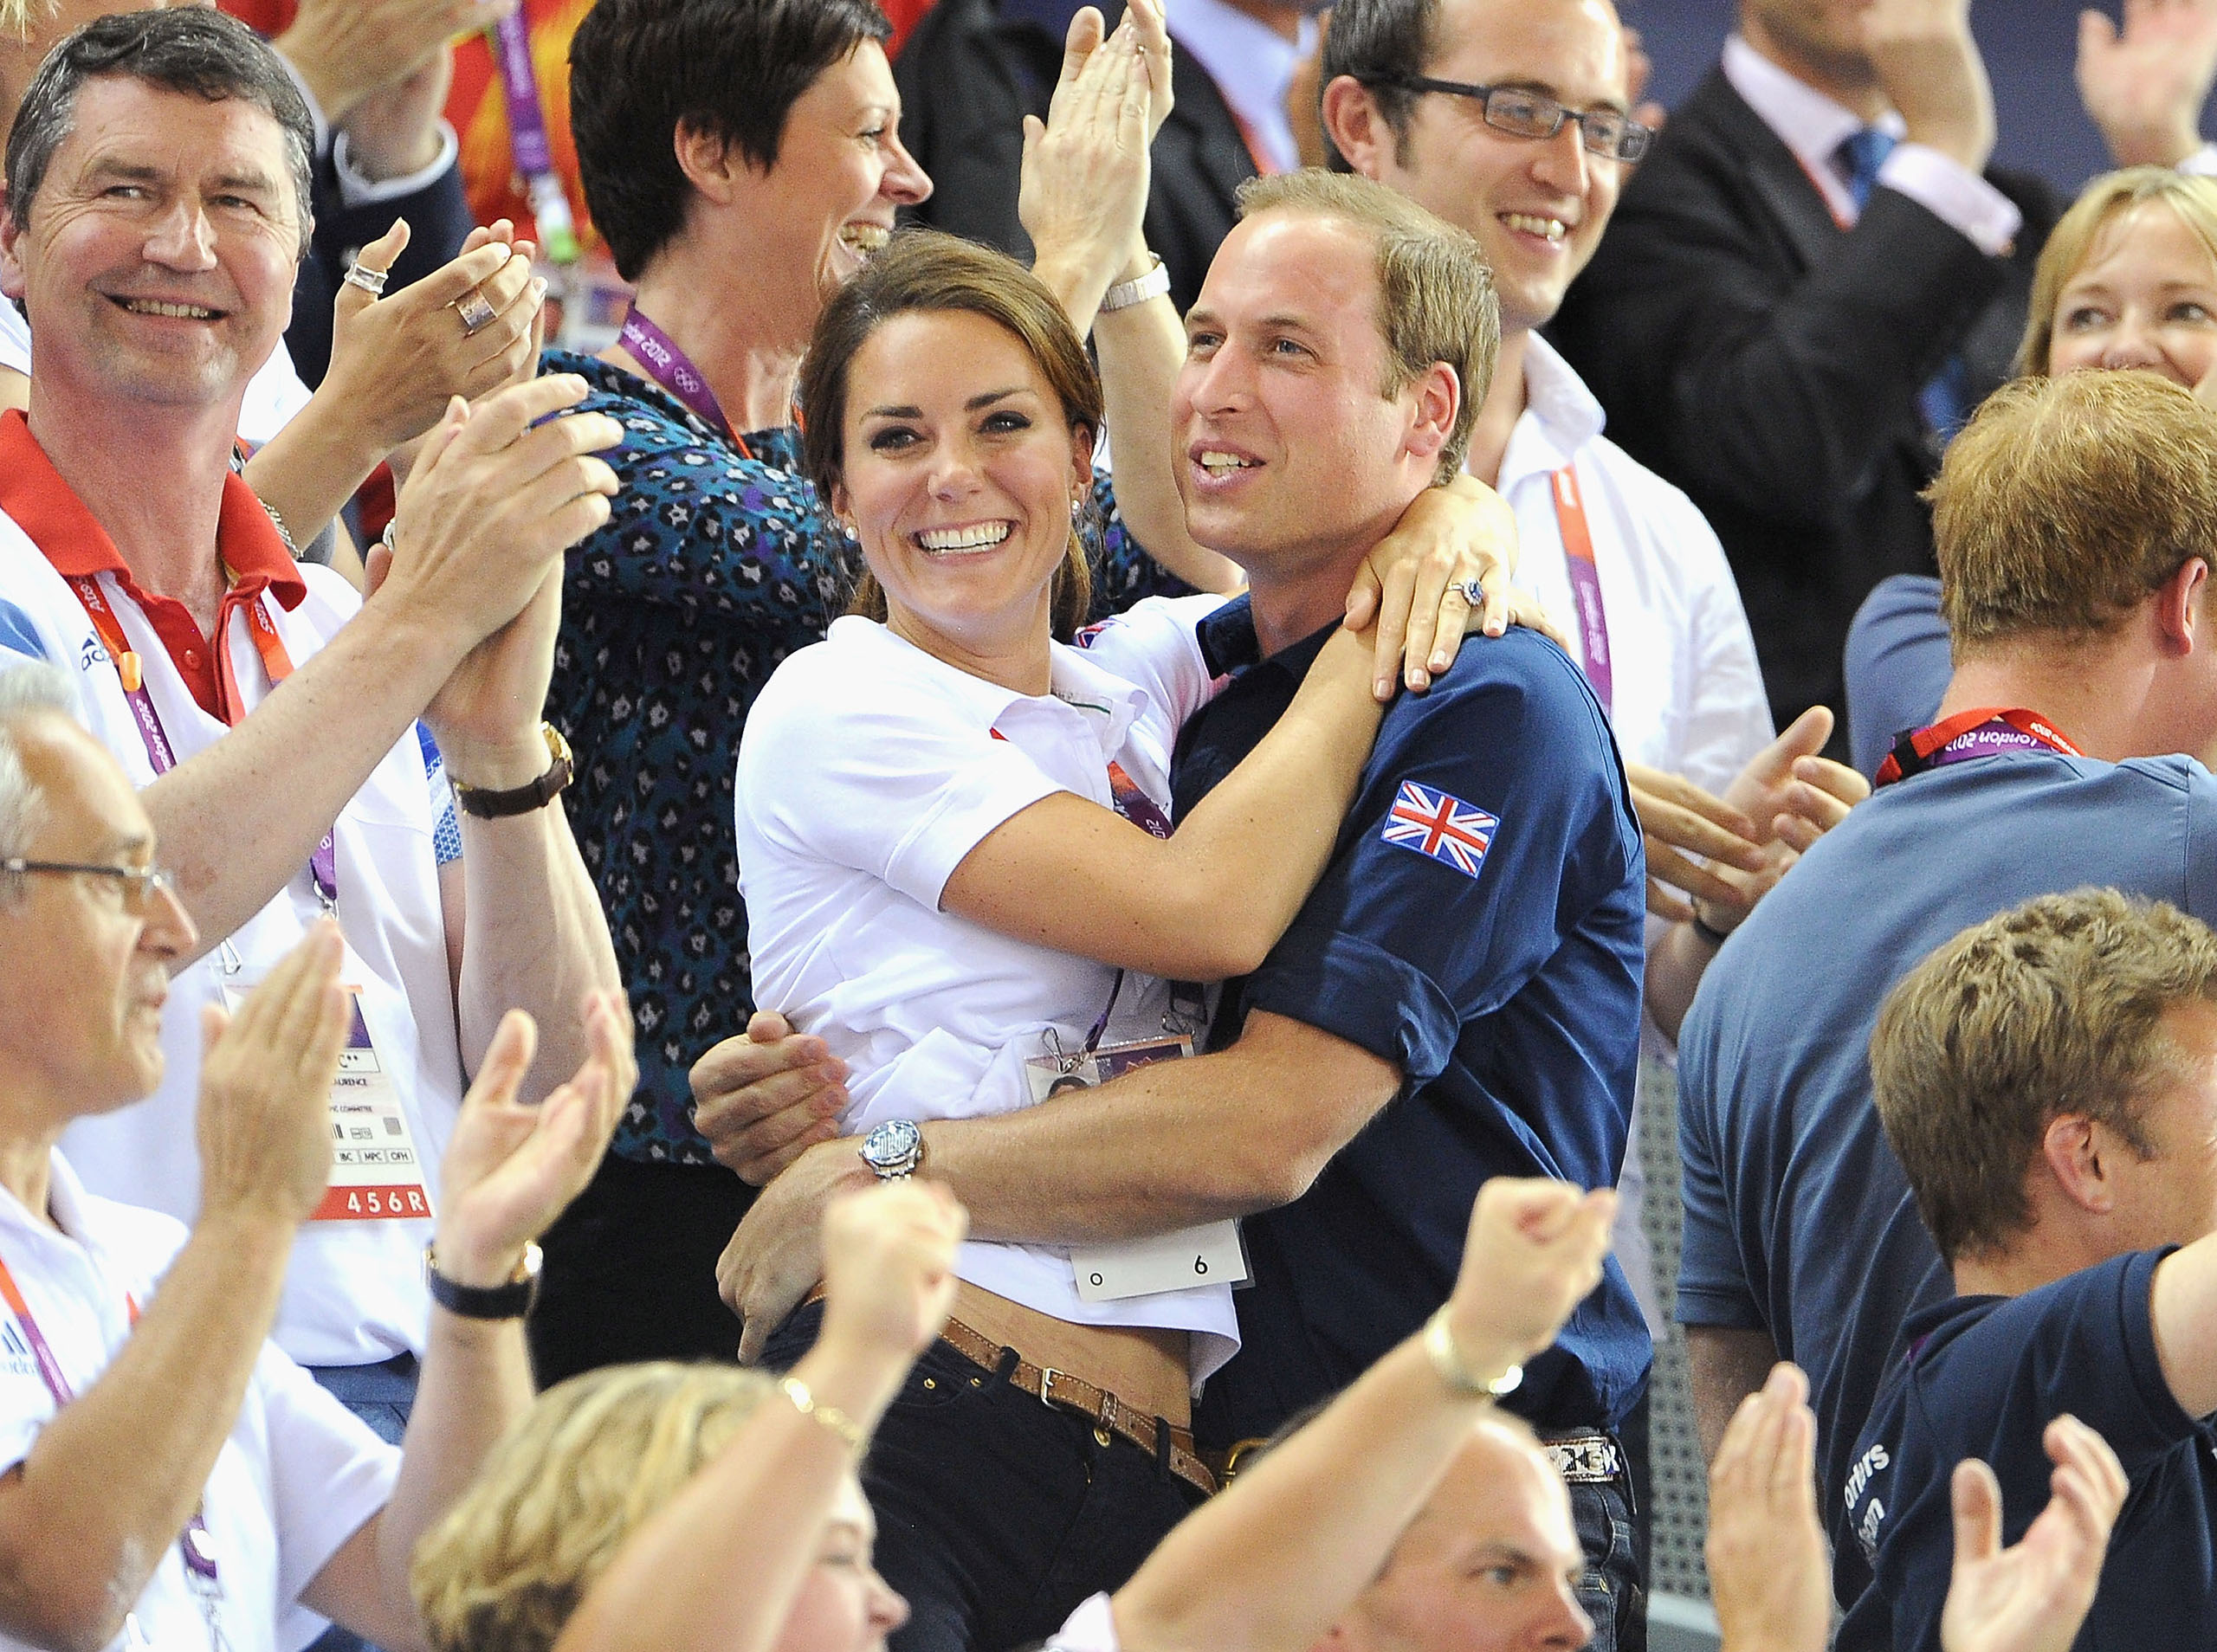 Catherine and Prince William during Day 6 of the London 2012 Olympic Games on Aug. 2, 2012.